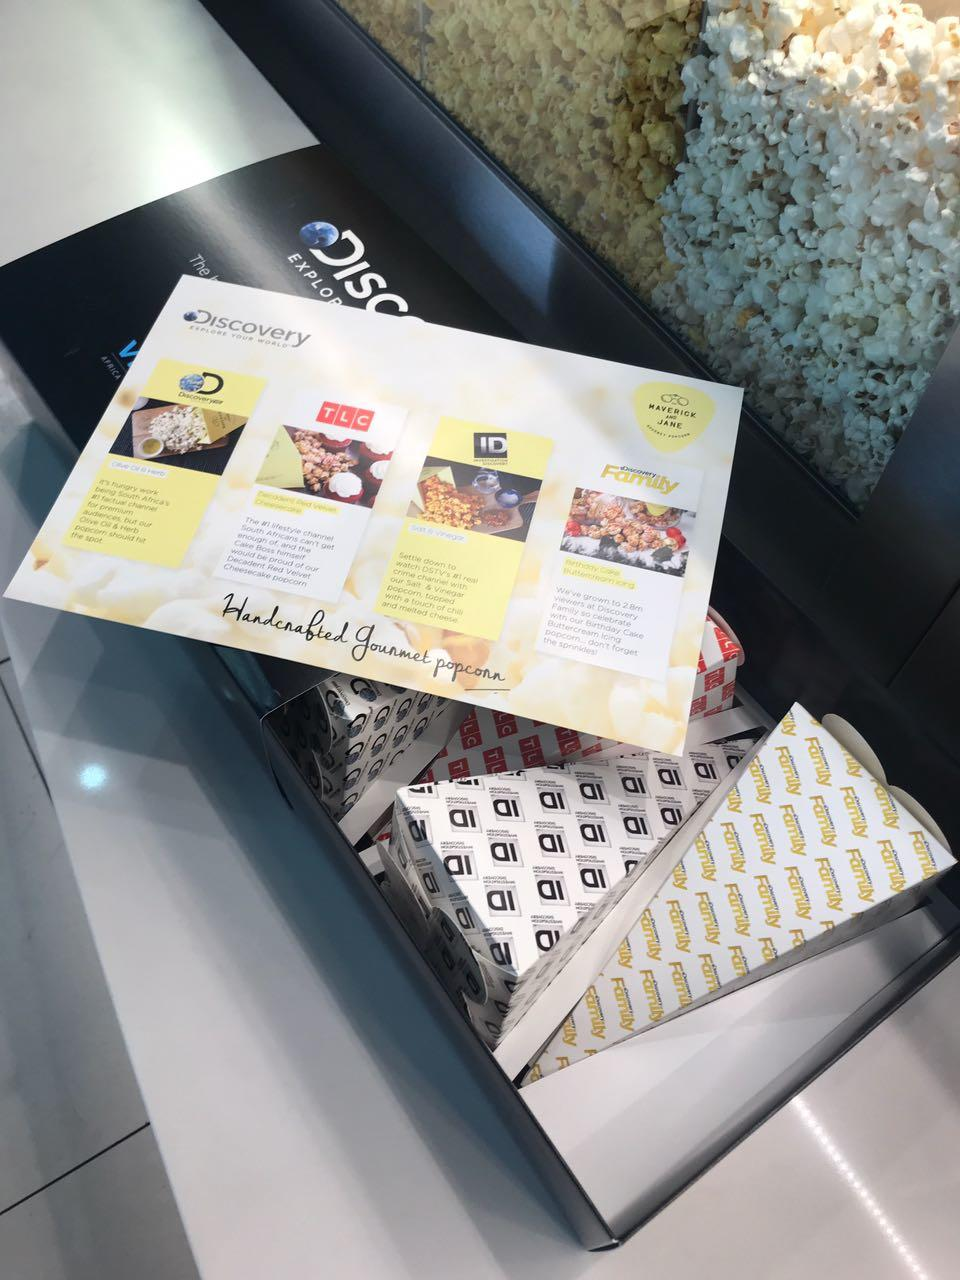 Flavours of Maverick & Jane Gourmet Popcorn at the Discovery Networks campaign 2018